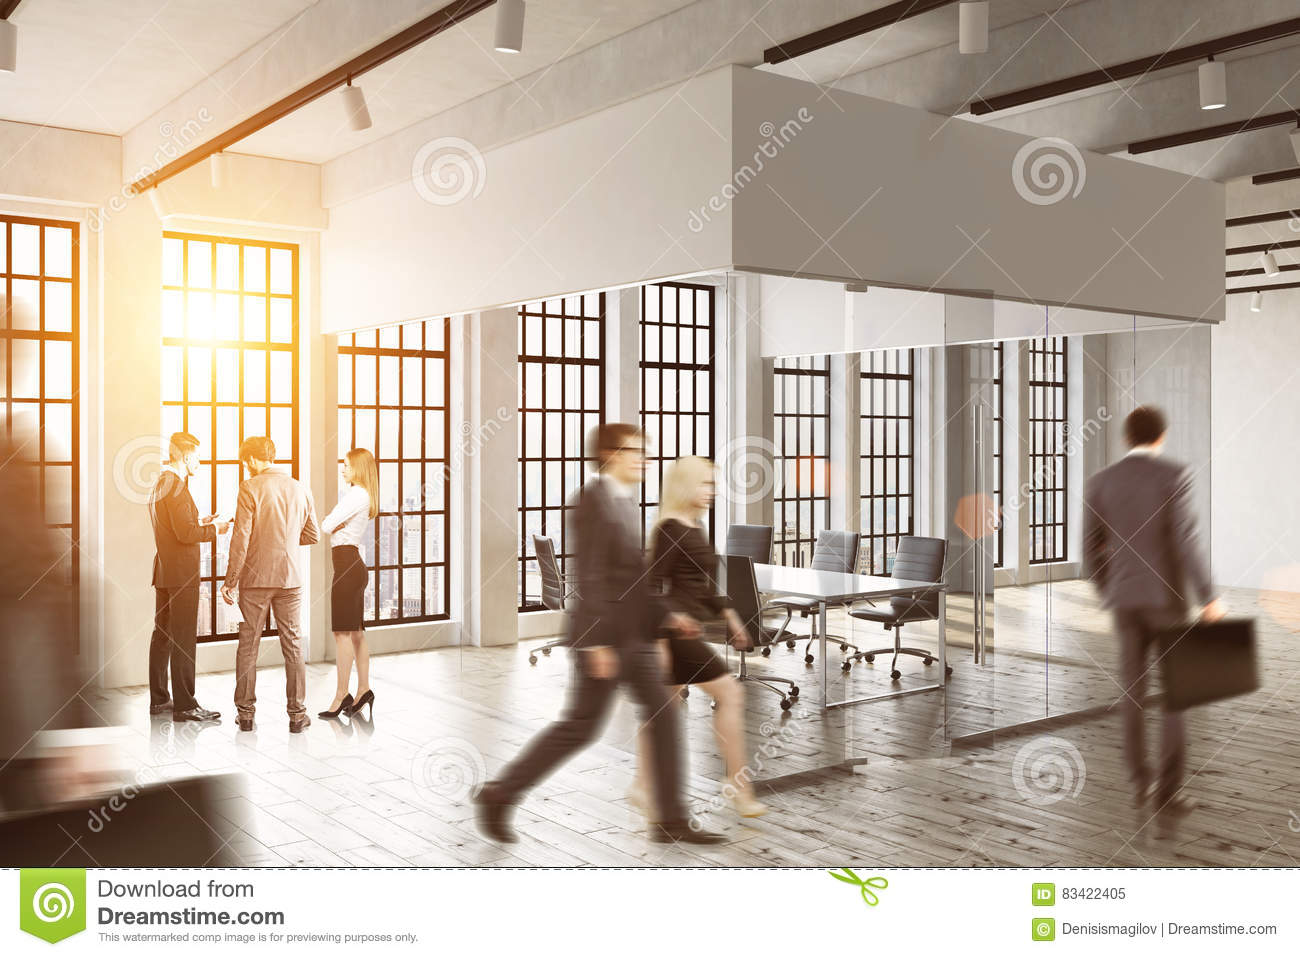 Business people walking in a glass office. Bright sunlight. Concept of office life.